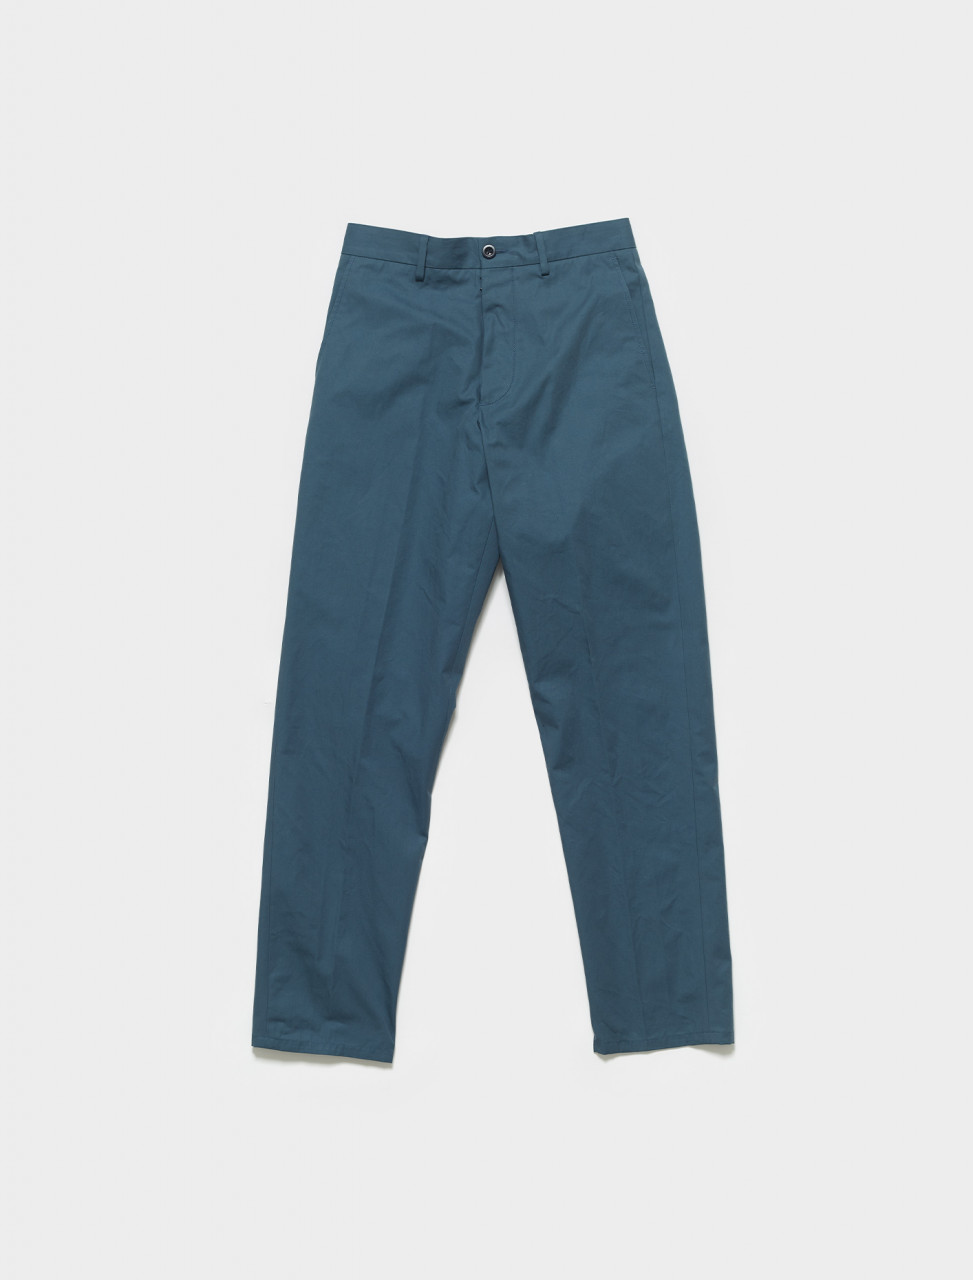 S50KA0542 MAISON MARGIELA COTTON CANVAS TROUSERS IN STEEL BLUE